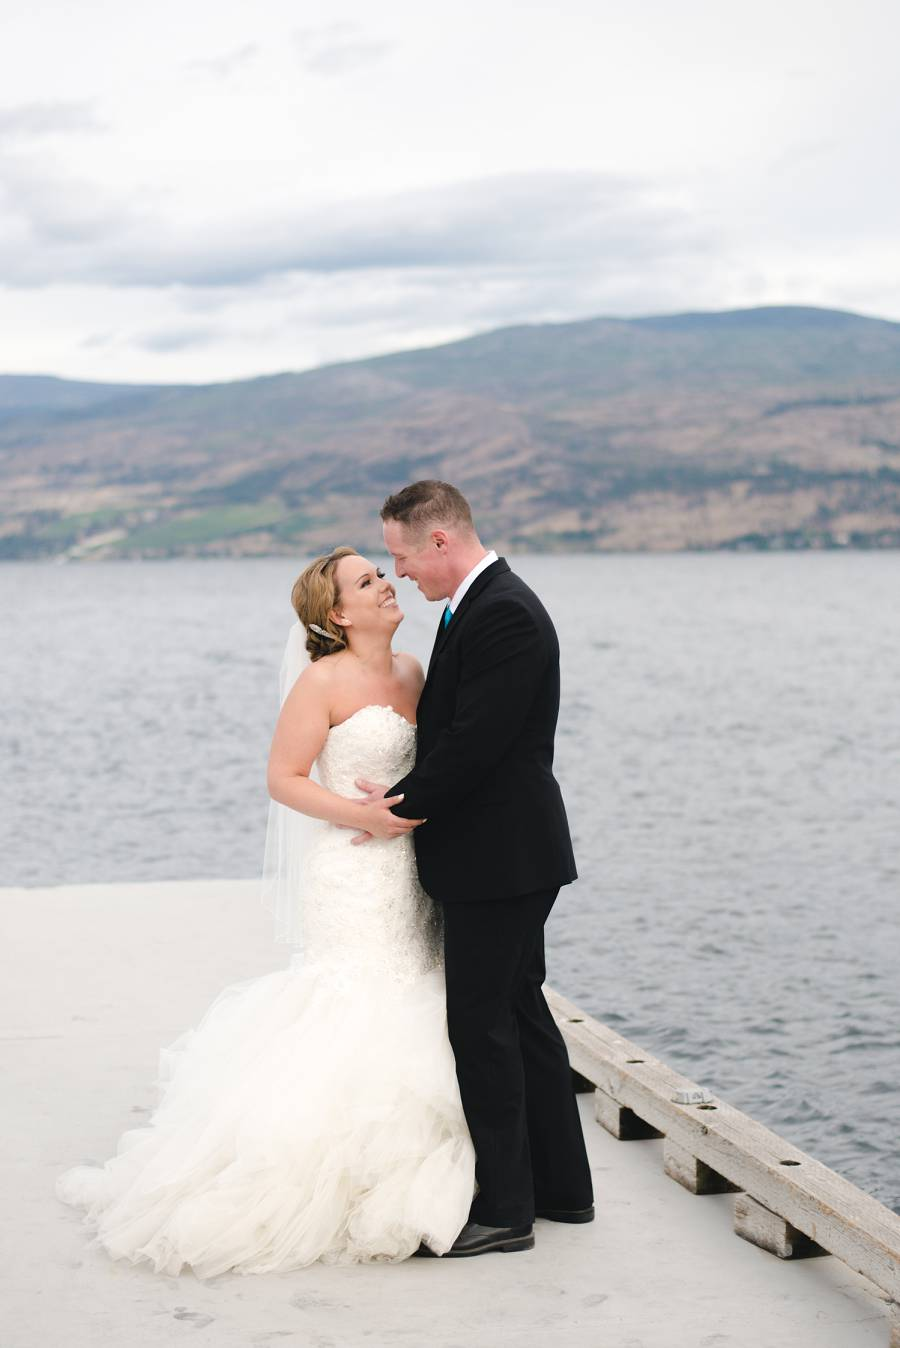 Ryan & Katherine's Kelowna Wedding